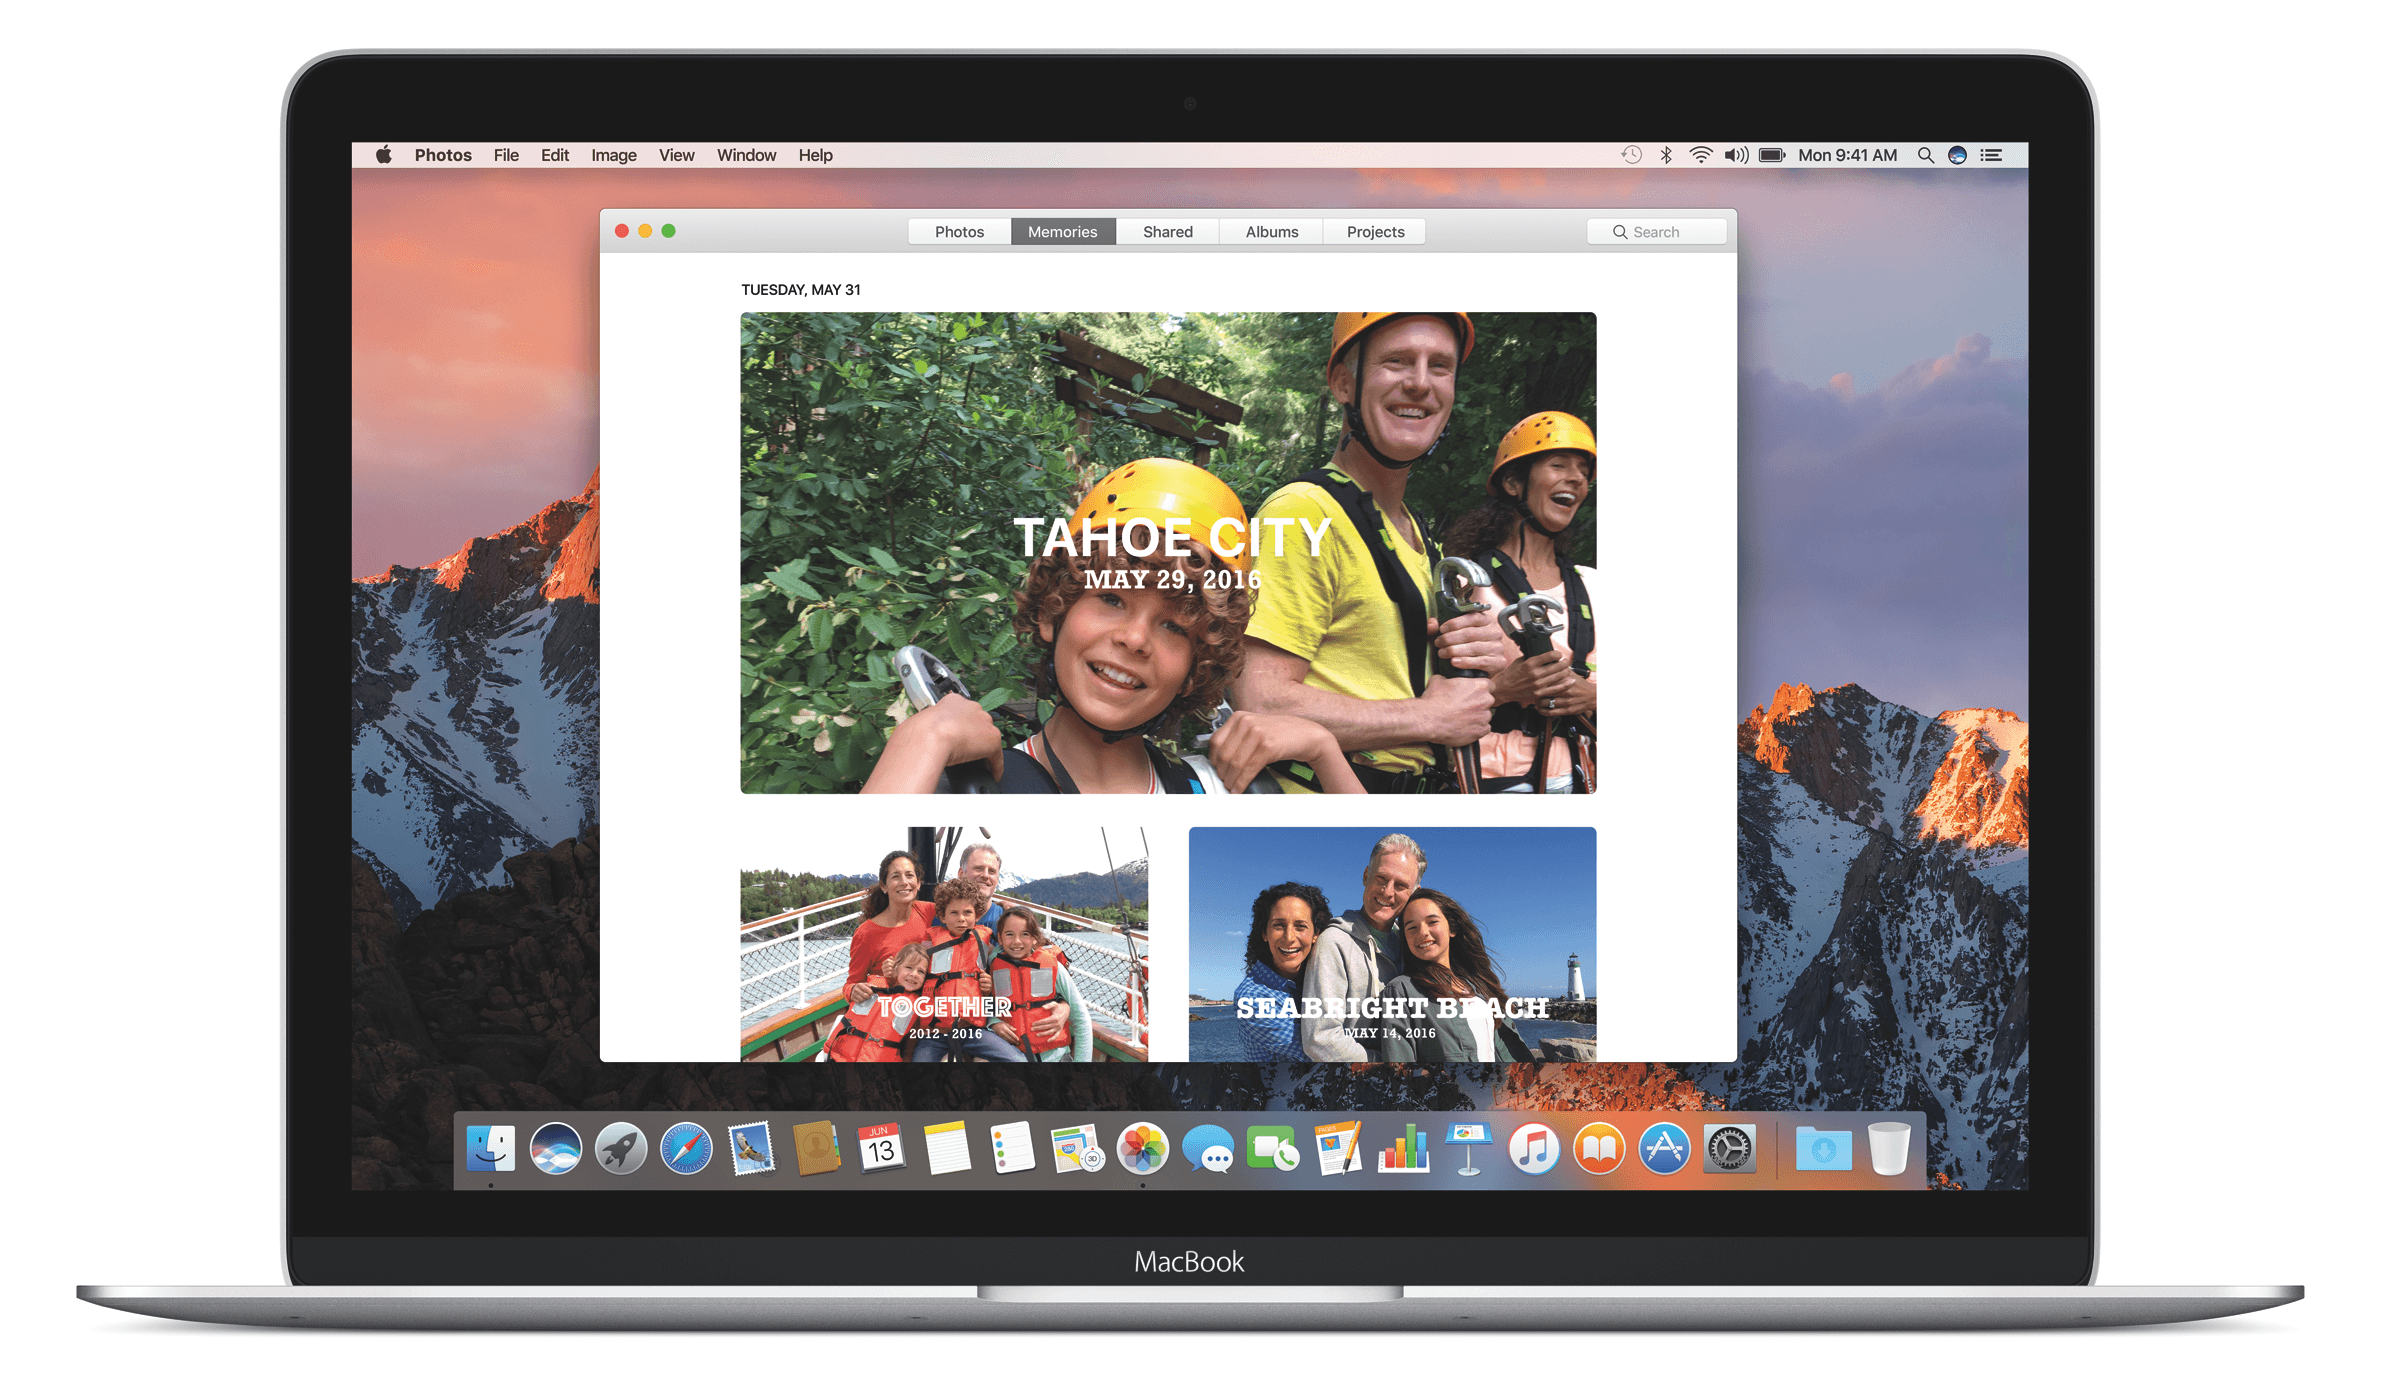 The new Memories interface on Photos for macOS